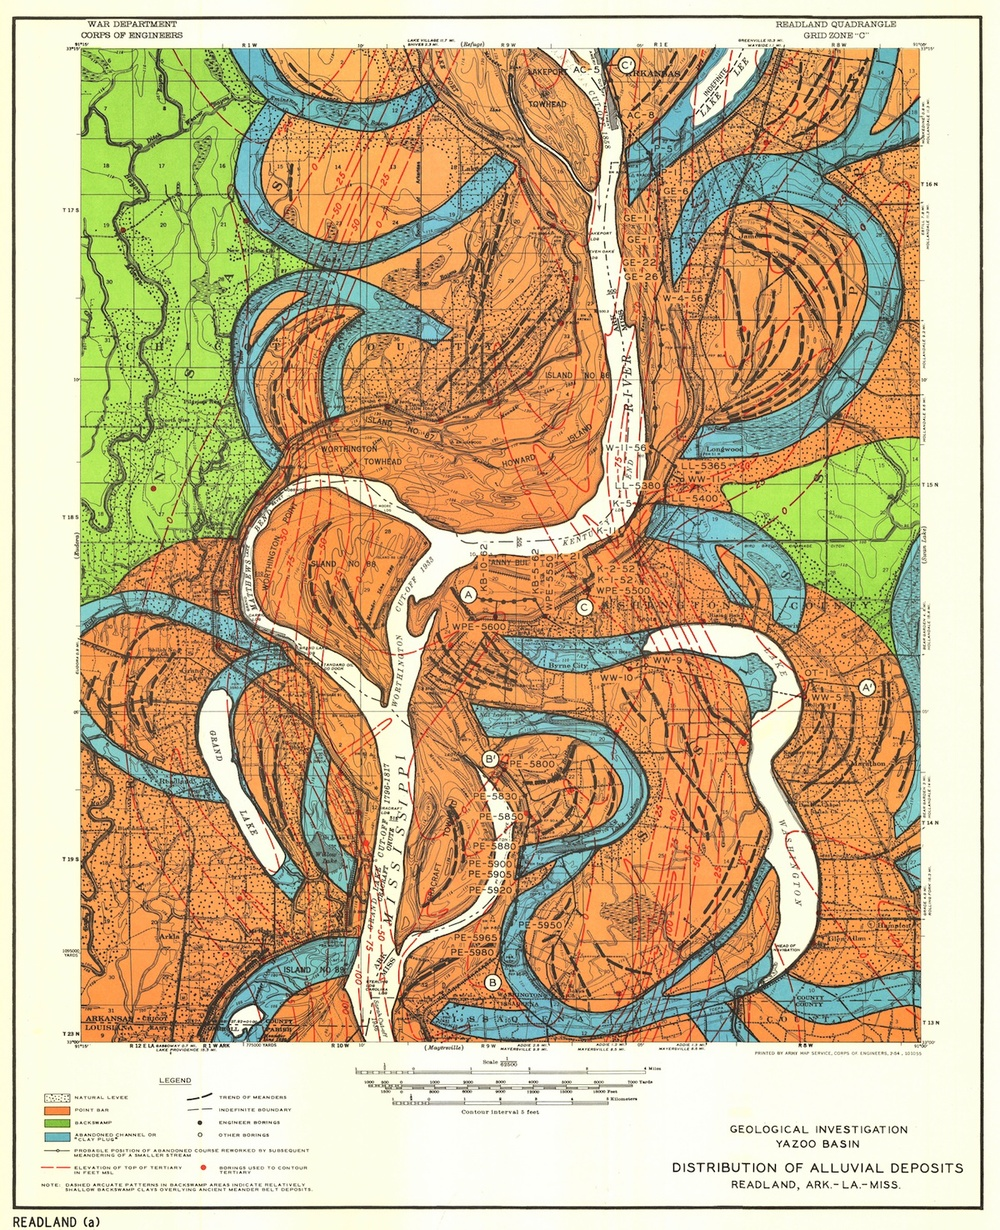 Best online geological maps — Agile